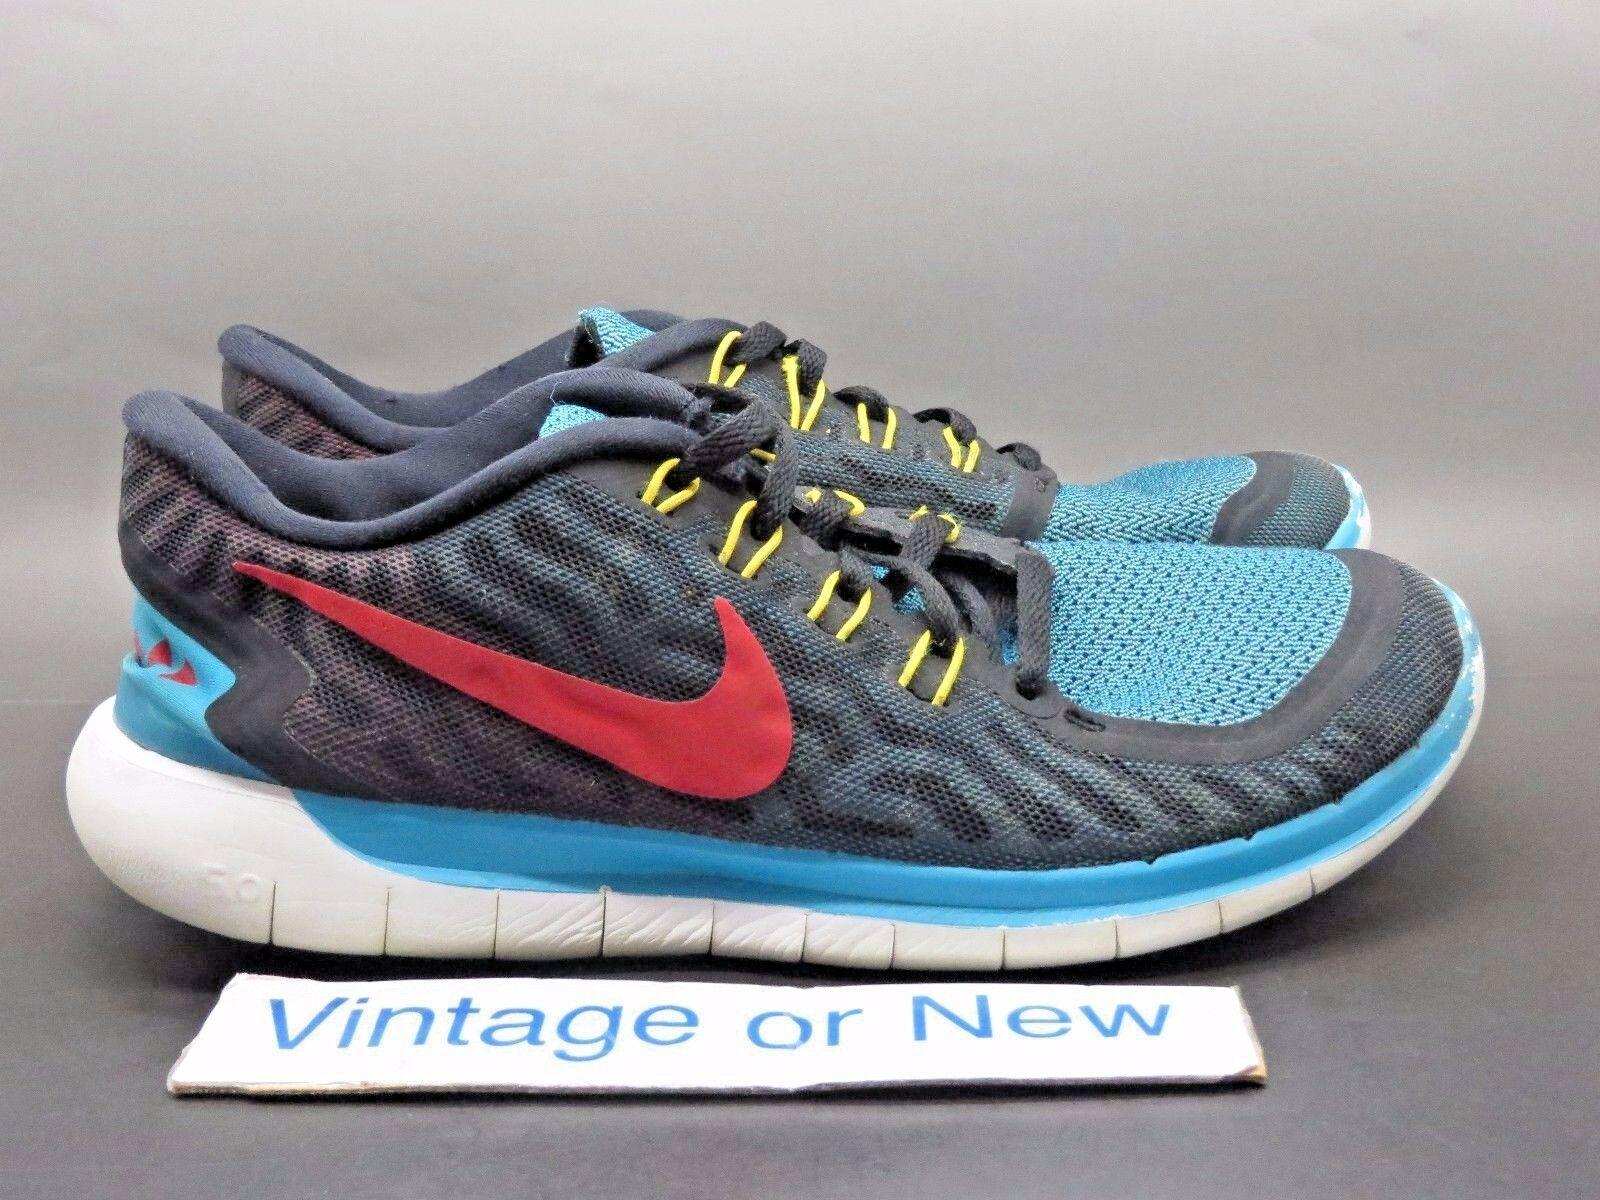 Men's Nike Free 5.0 N7 Turquoise Black Red Running Shoes 744807-064 Price reduction